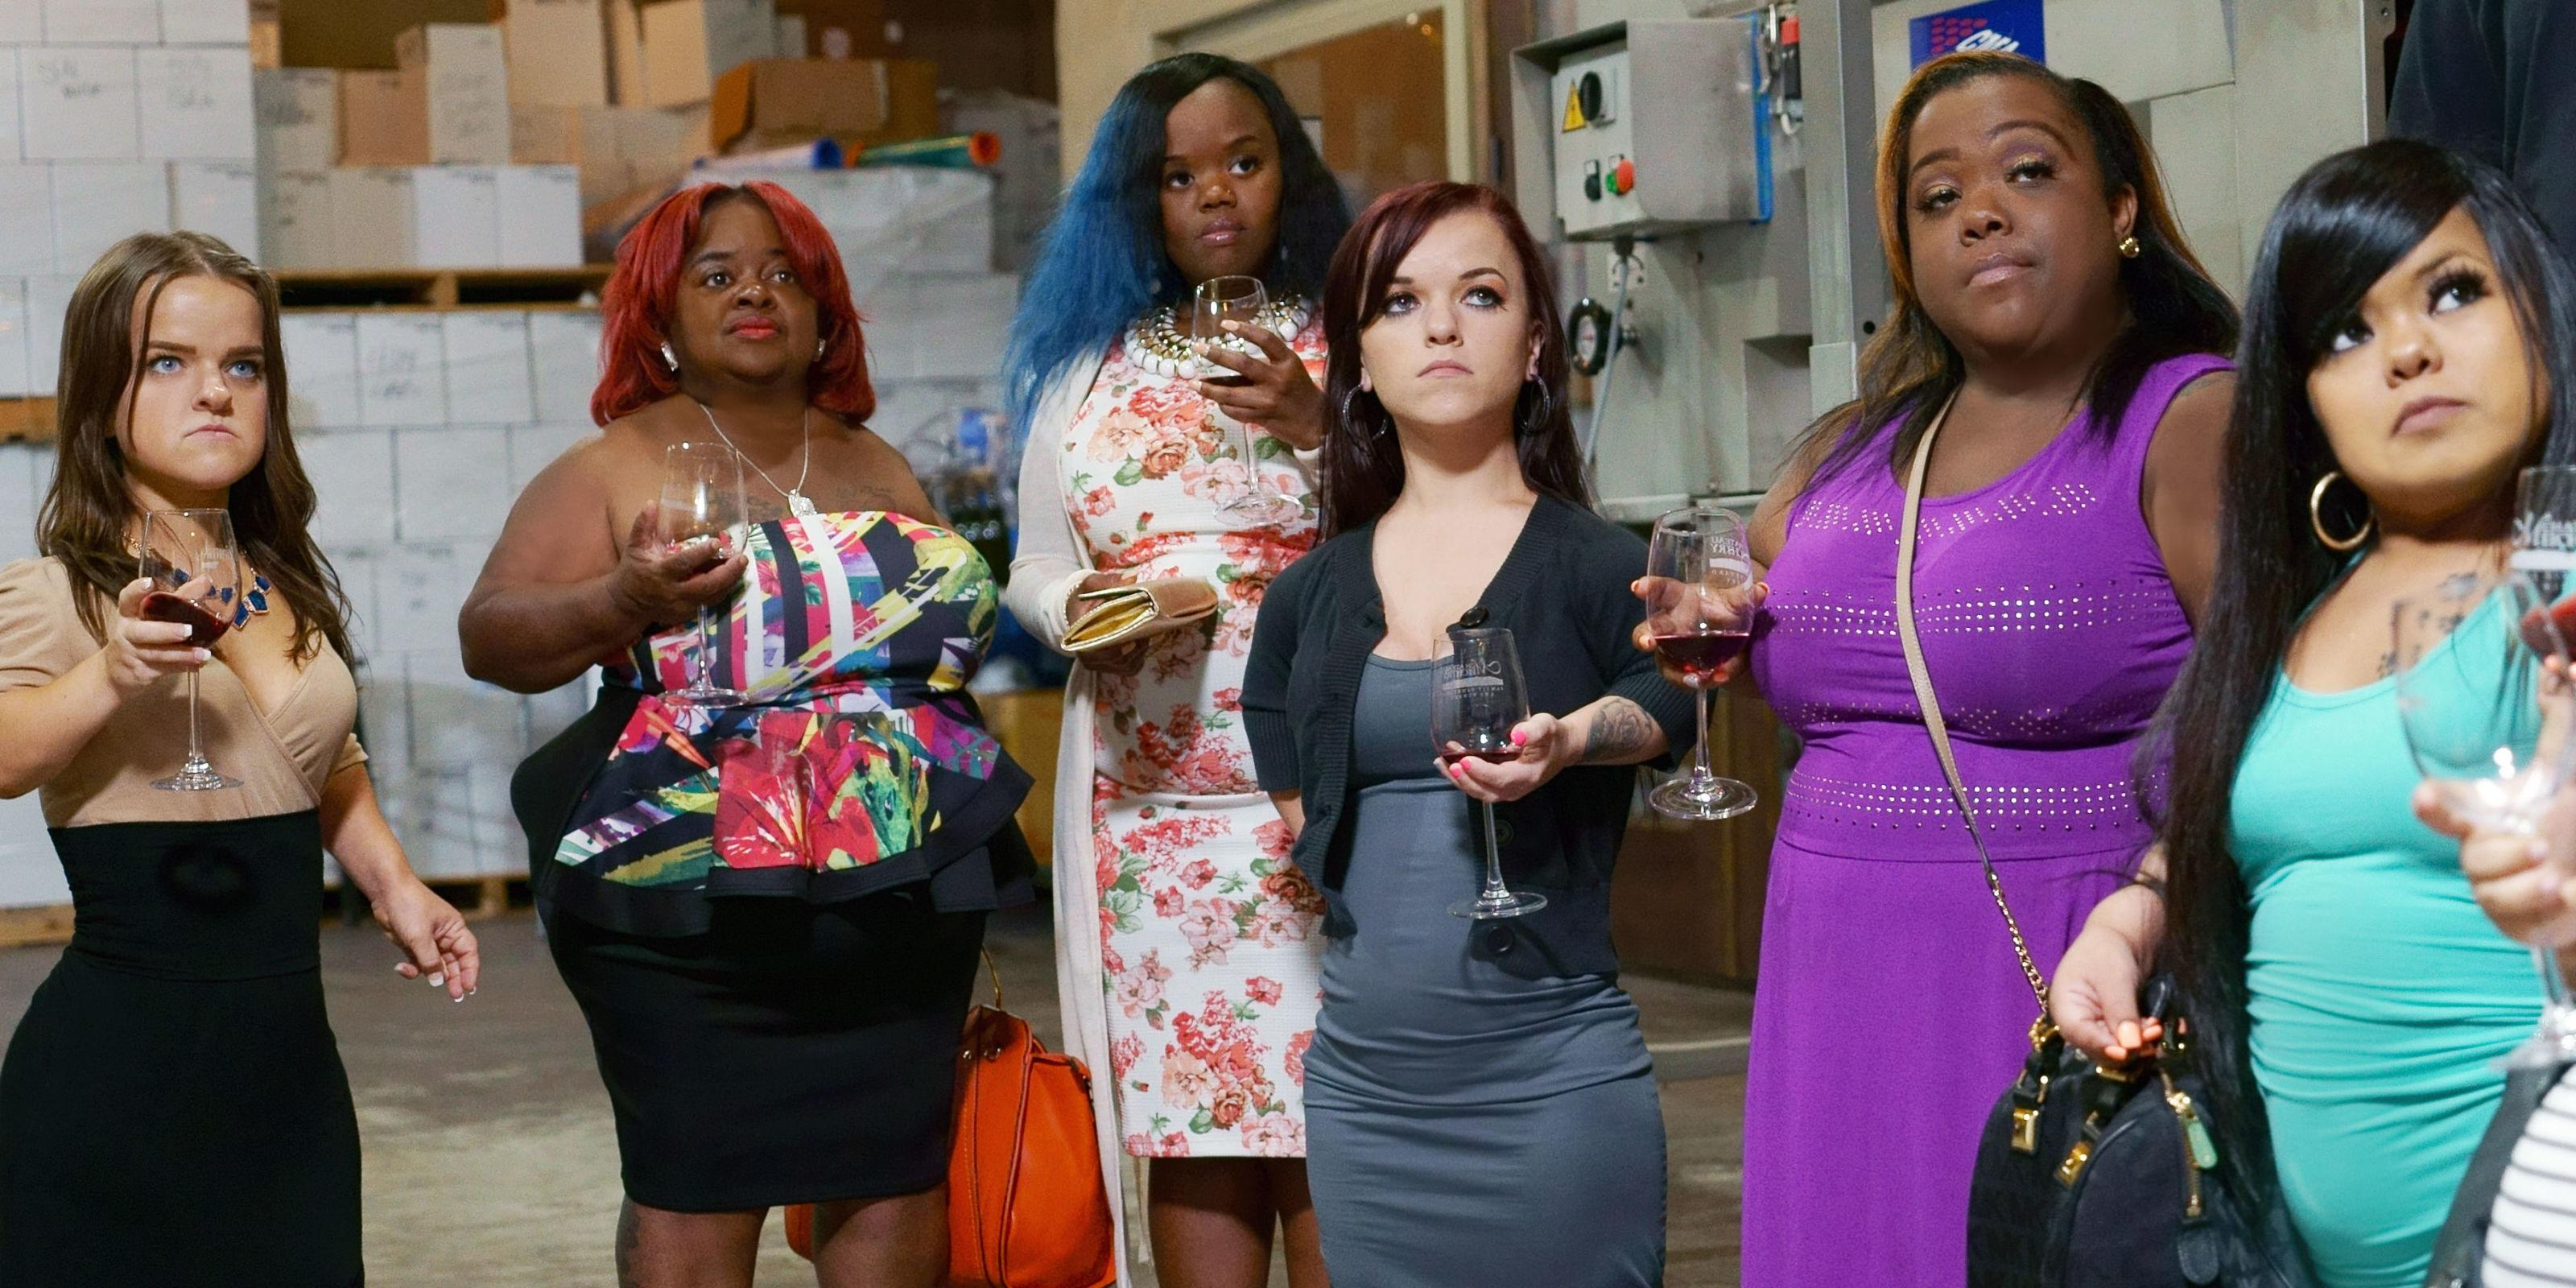 Melissa Hancock Of 39 Little Women Atlanta 39 Charged For Dui